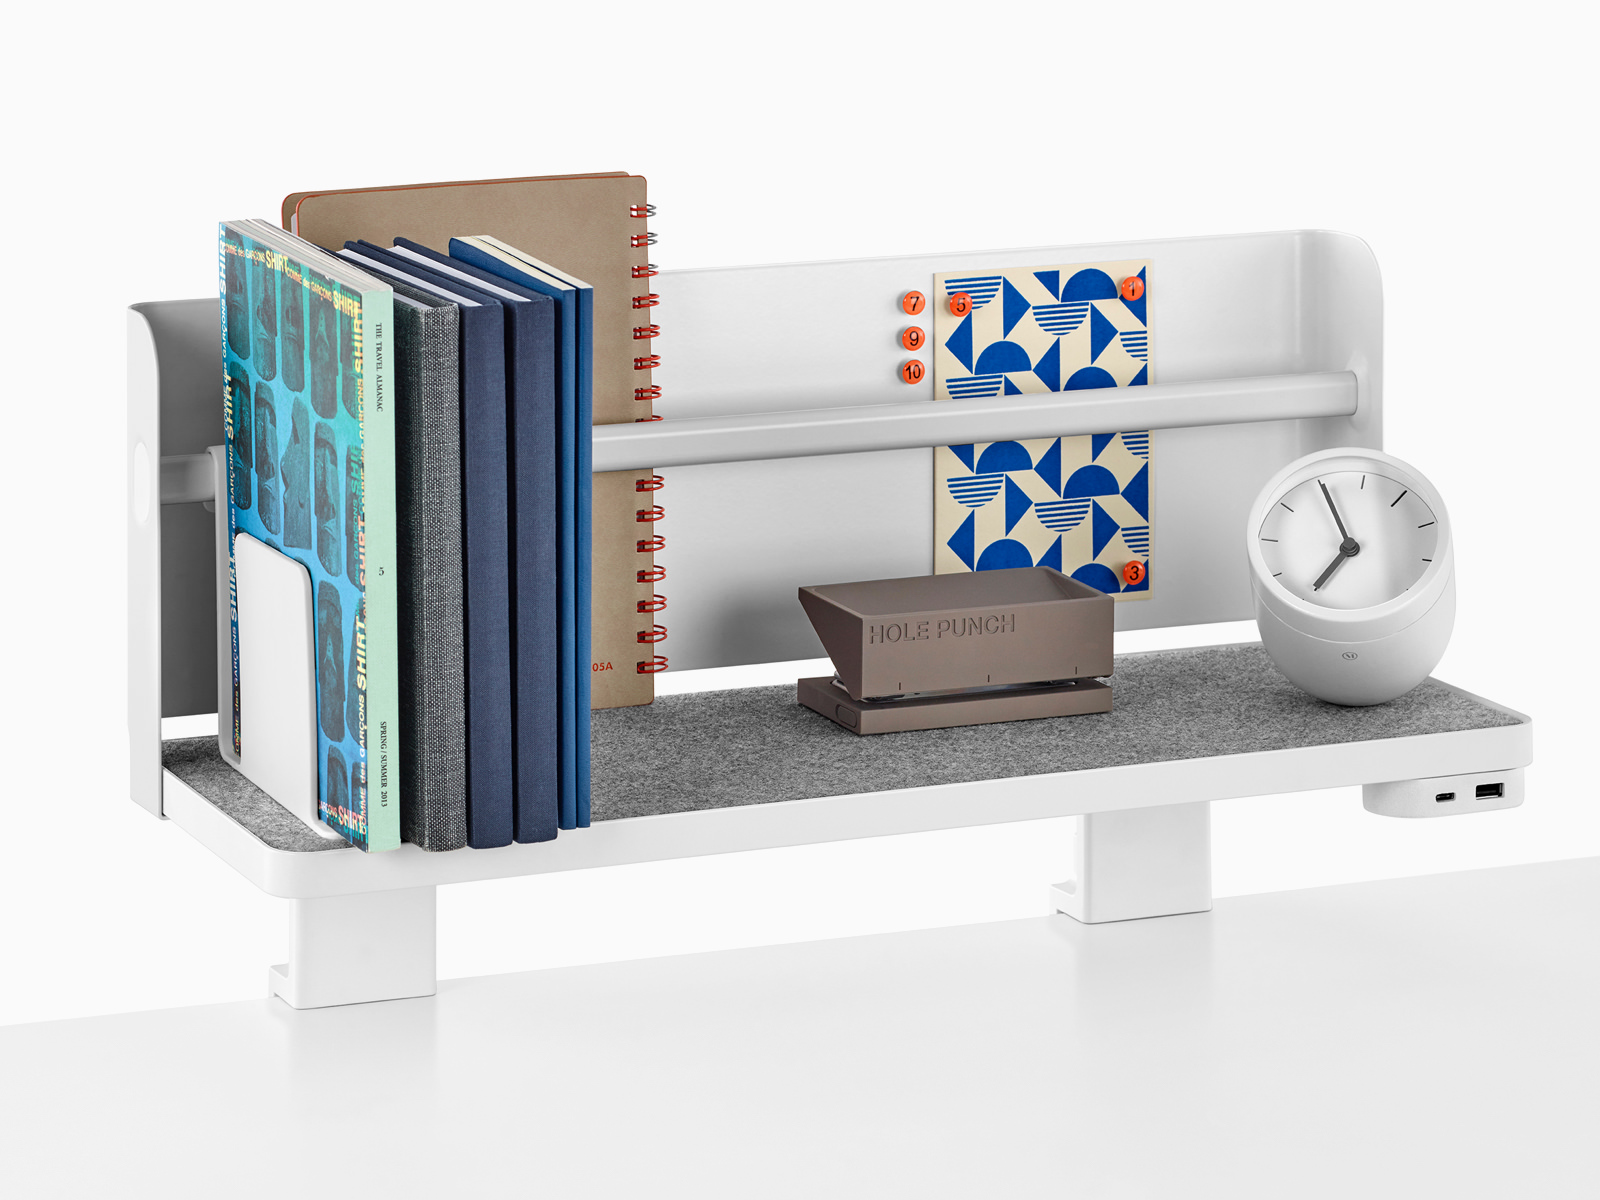 A Ubi Attached Shelf with a backdrop supports books, a hole punch, a desk clock, and a USB power module.